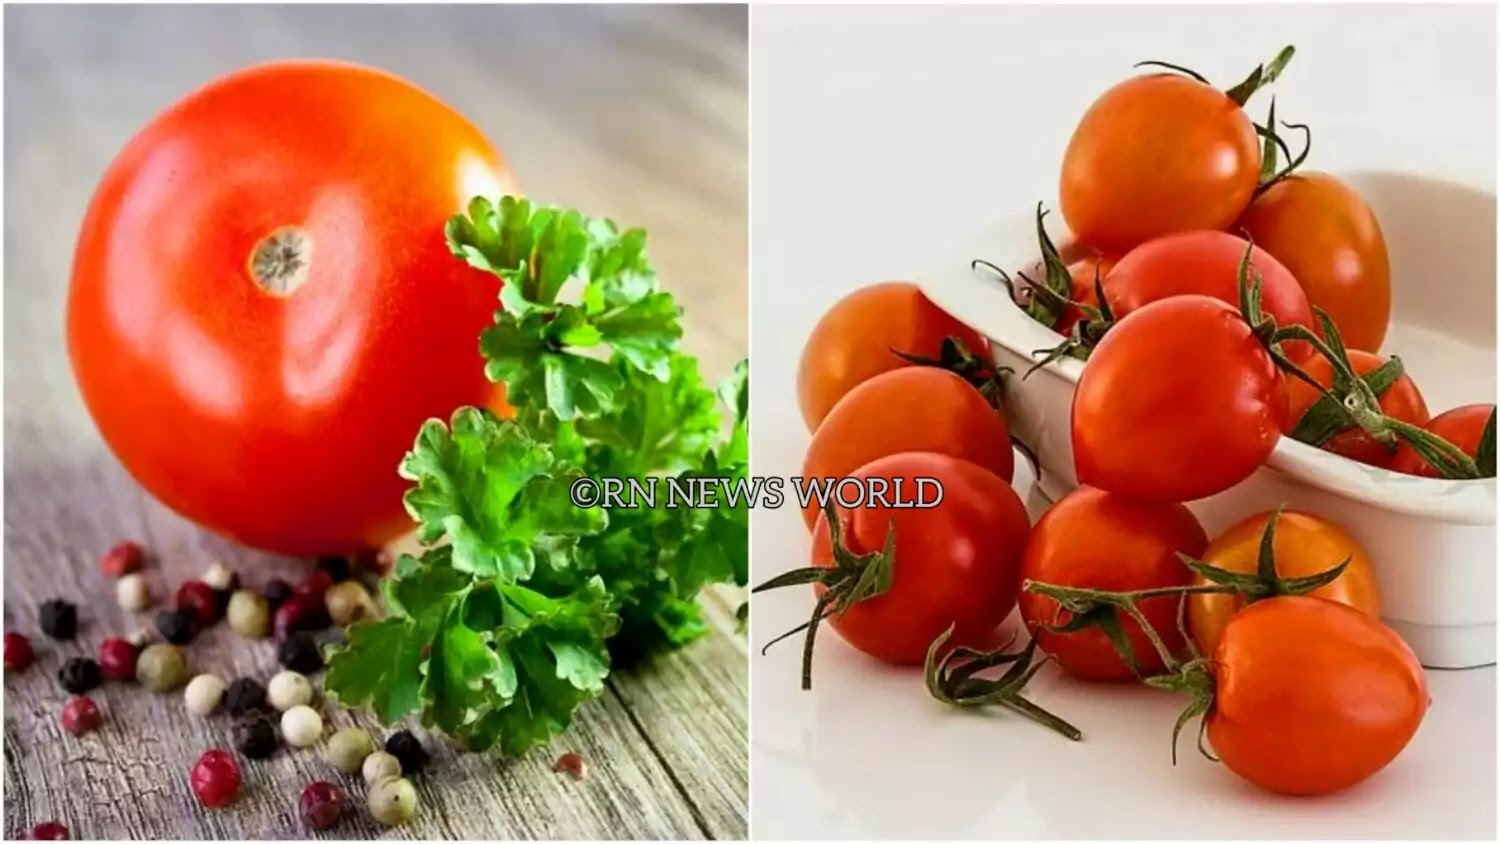 How To Use Tomatoes For Open Skin Pores